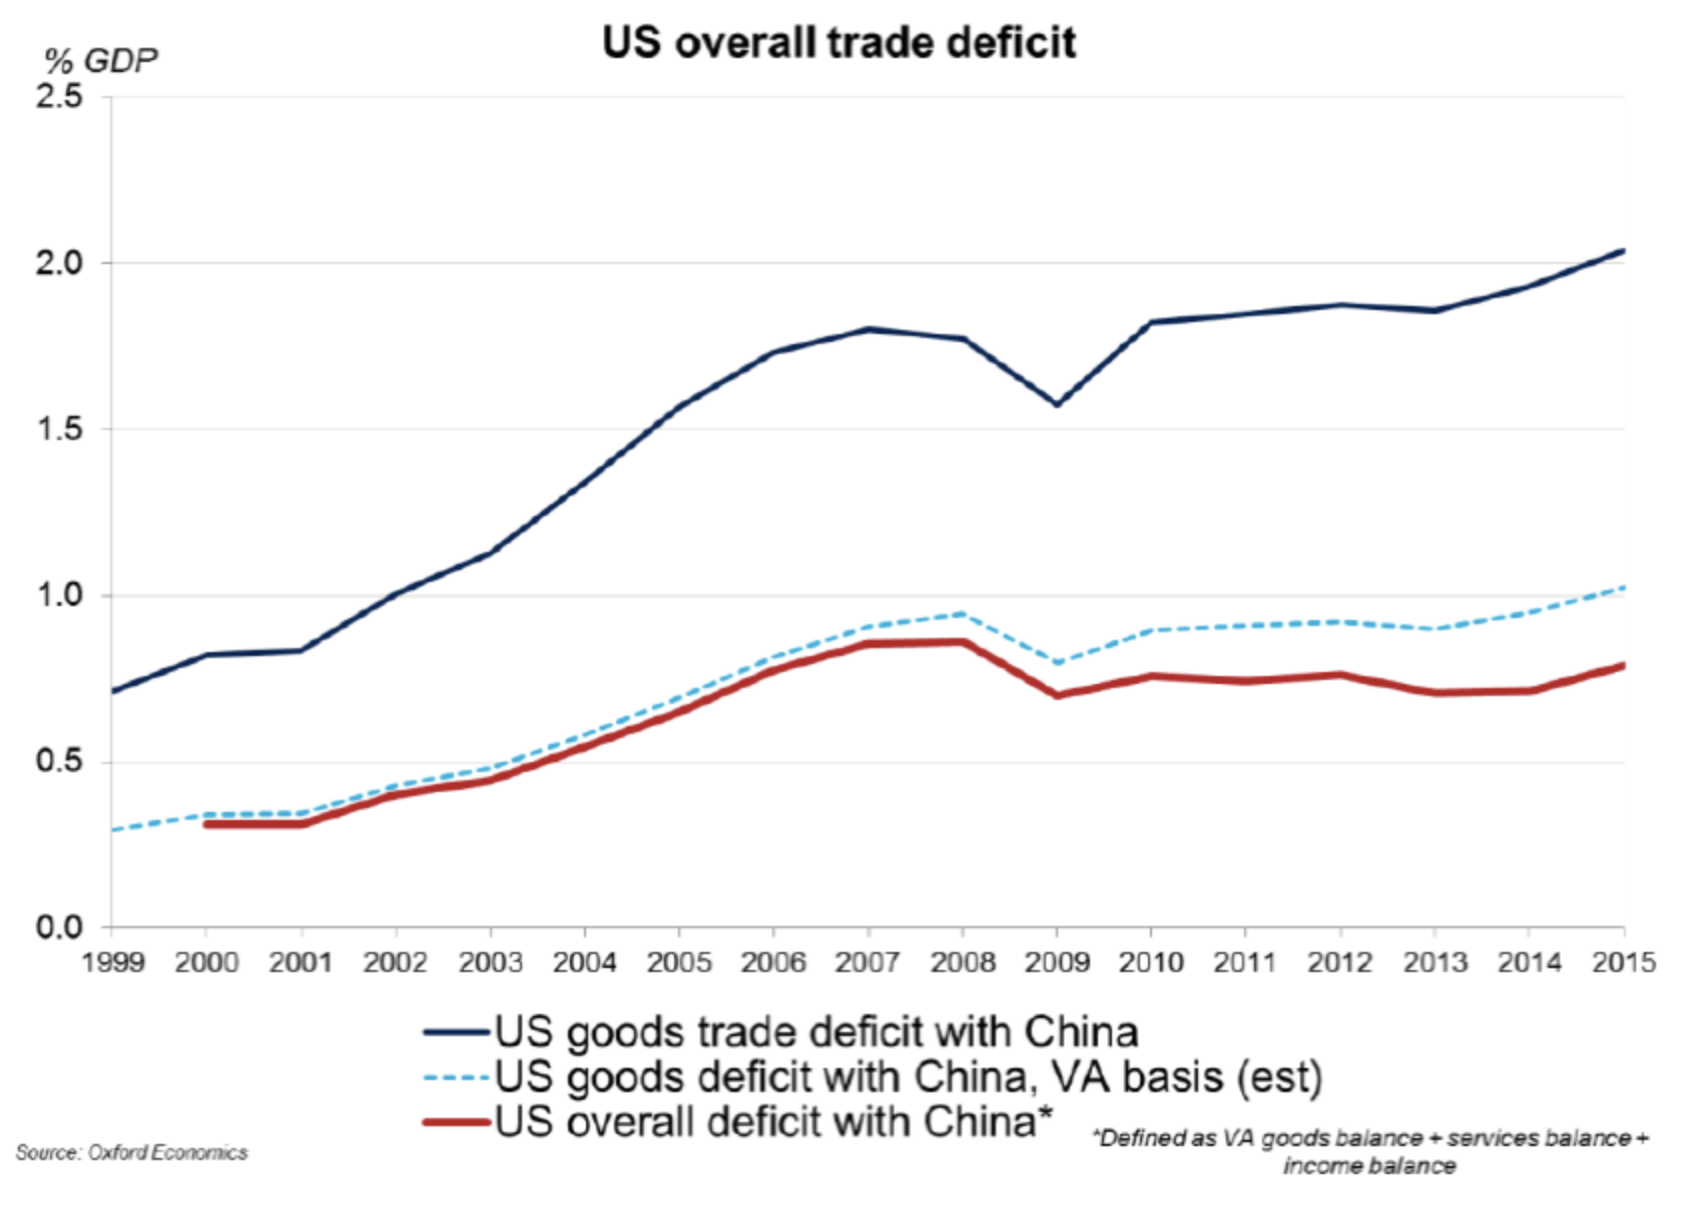 Three ways of looking at the US trade deficit with China (as % of GDP)